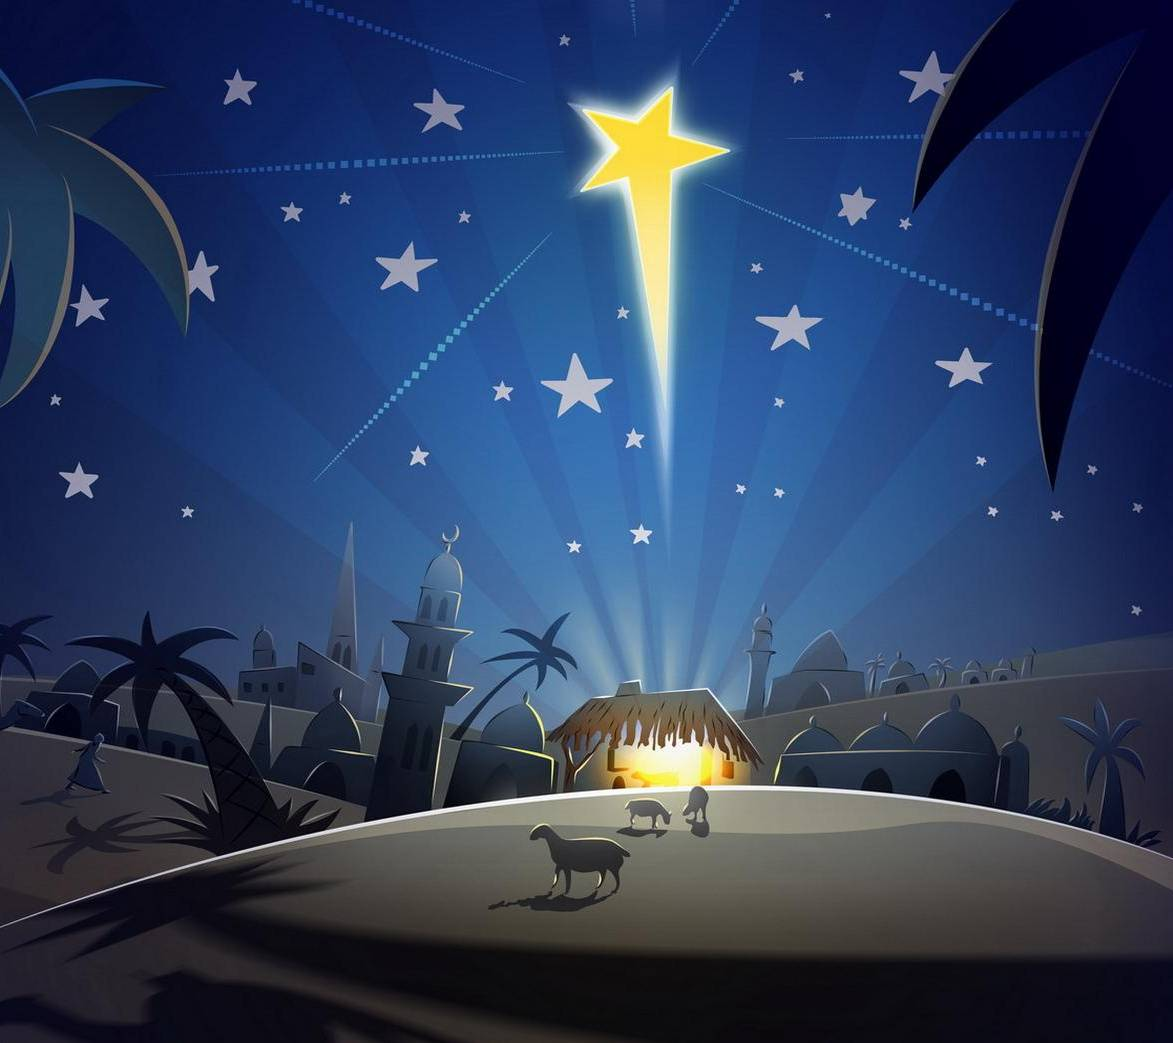 Jesus Christmas Wallpaper By Maselli A7 Free On Zedge